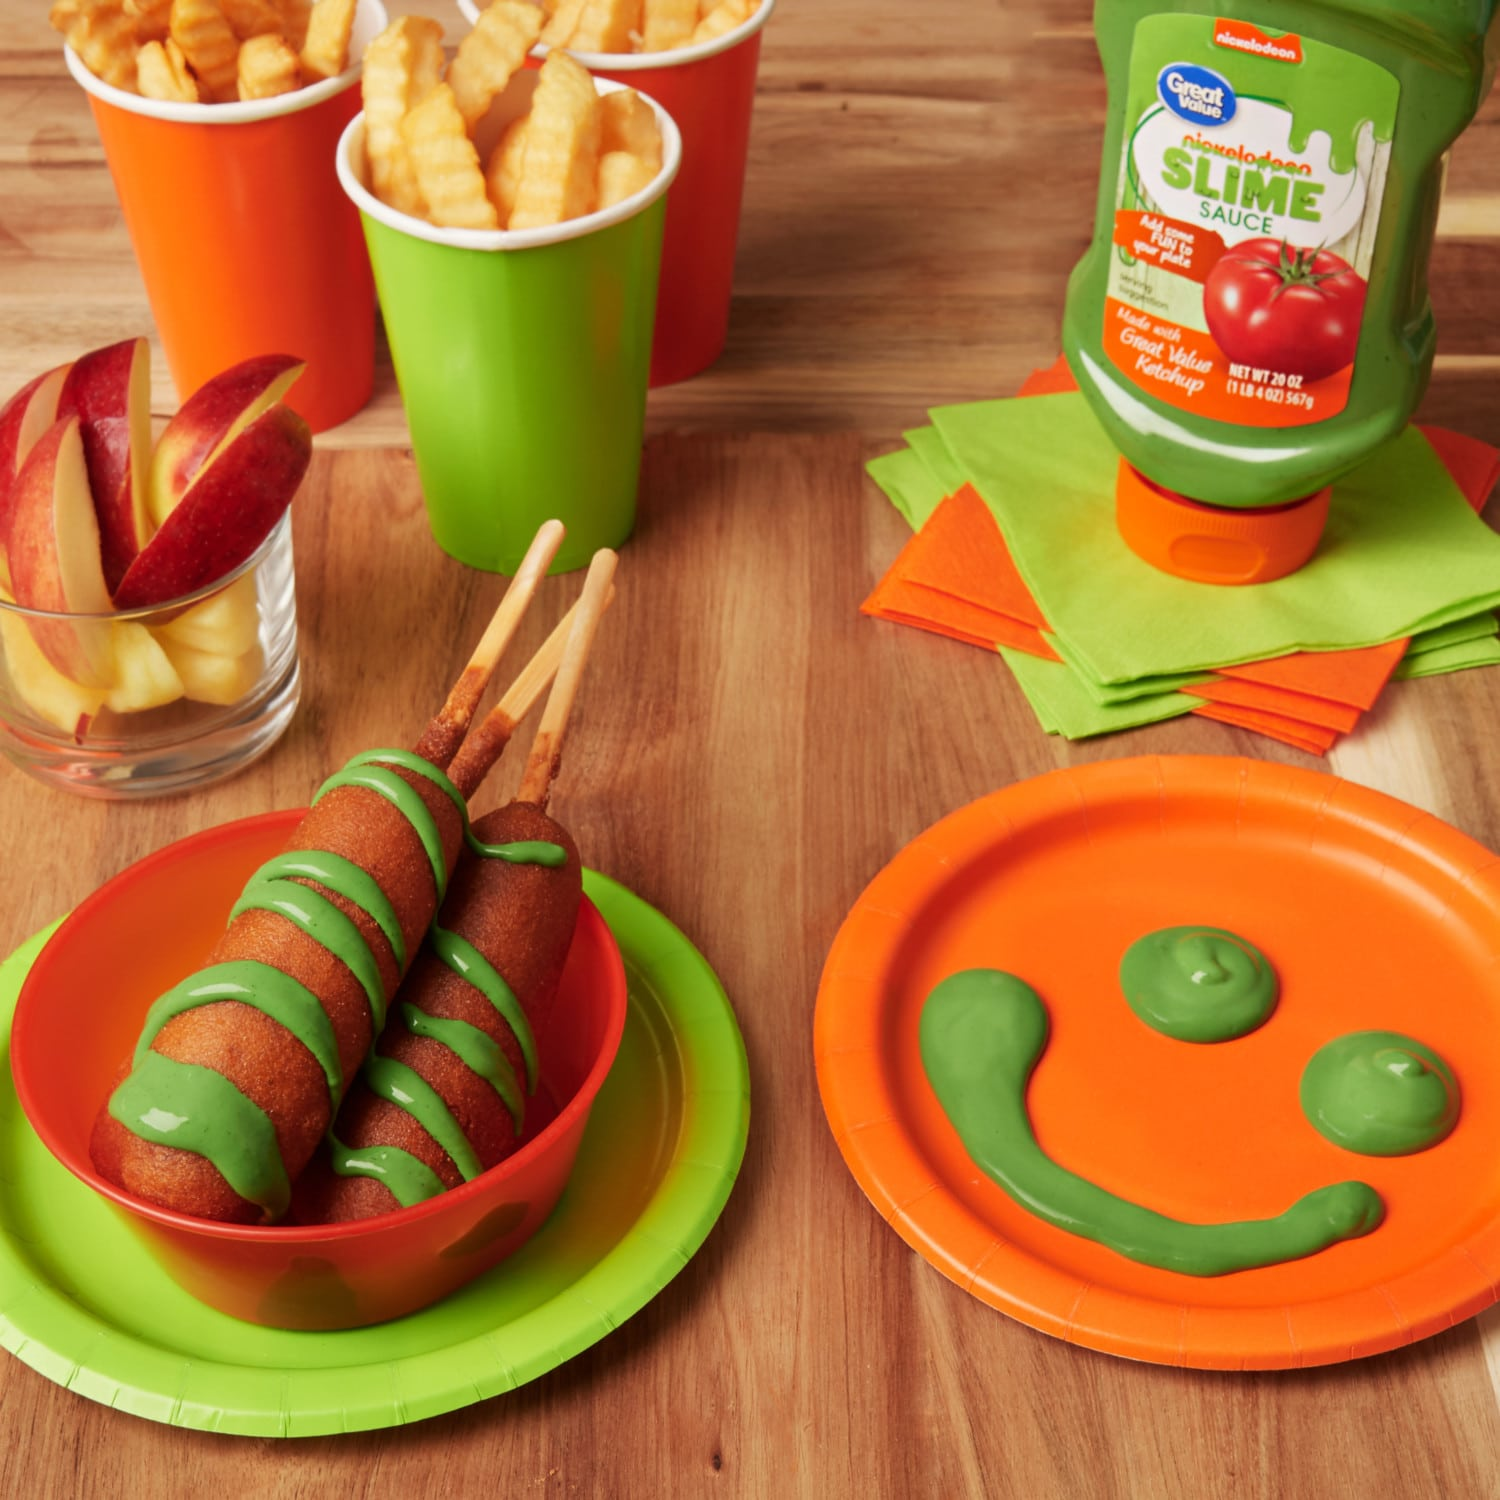 """Slime Sauce"" ketchup is a dream/nightmare come true for every '90s kid"